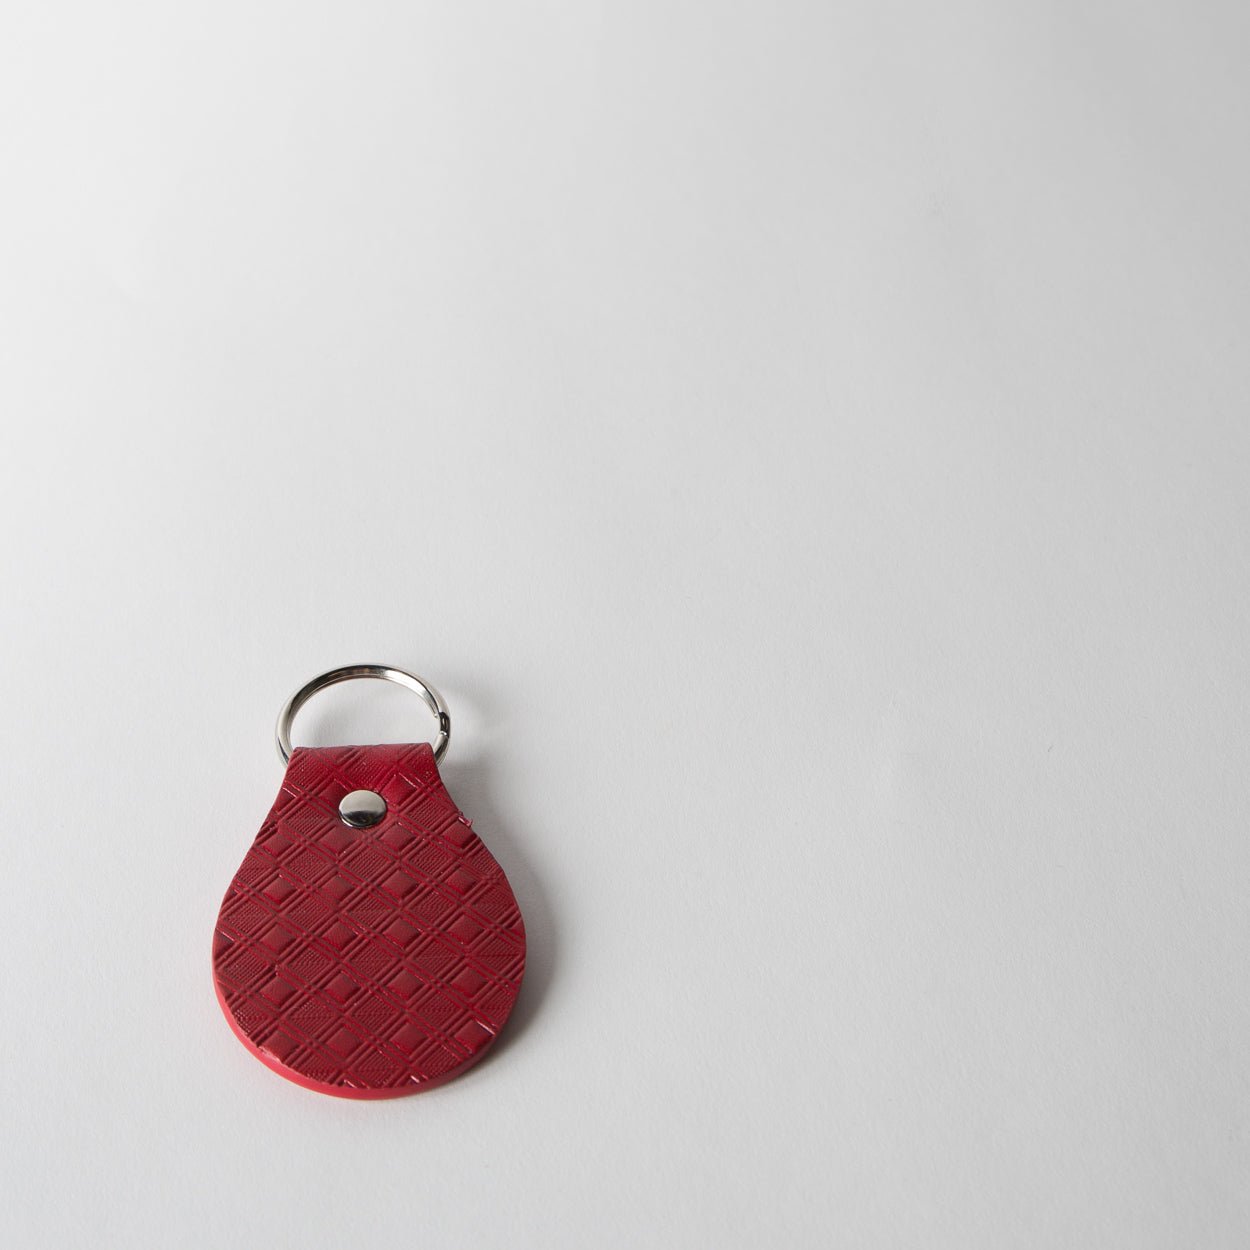 Leather Tile Keychain, red